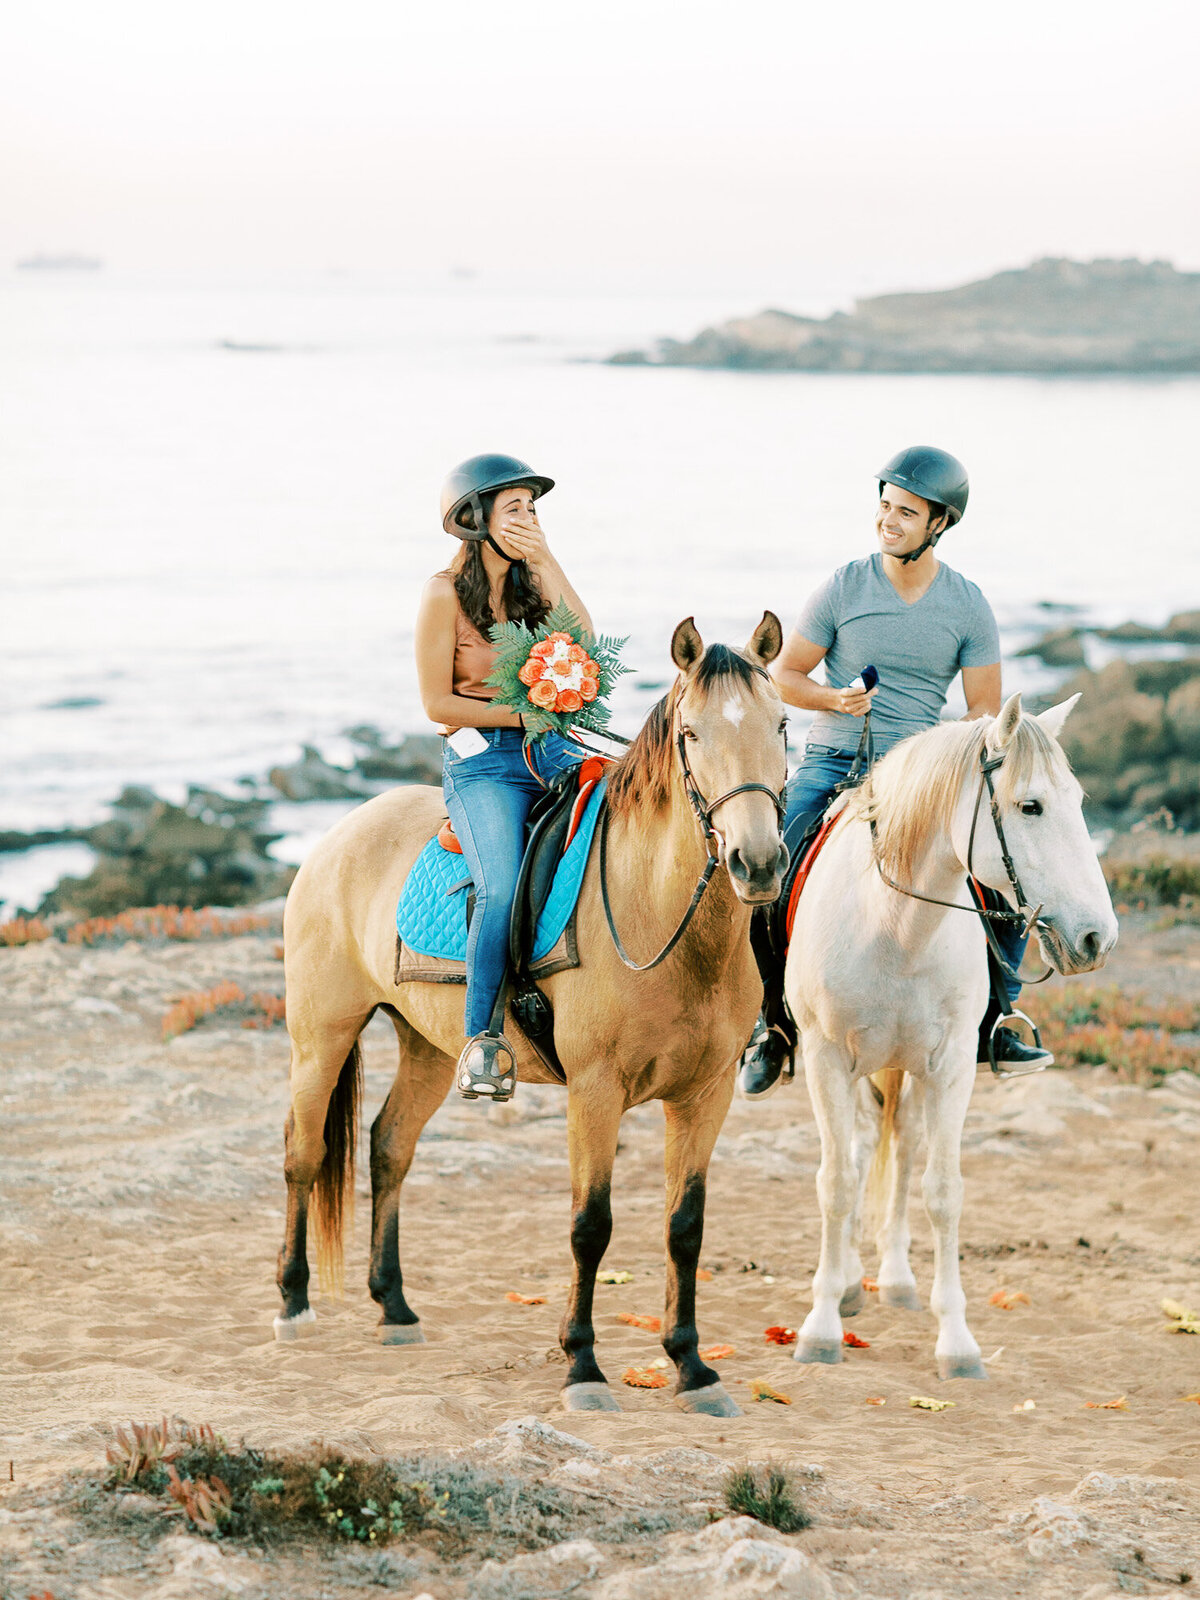 beach_horseback_riding_wedding_proposal-25